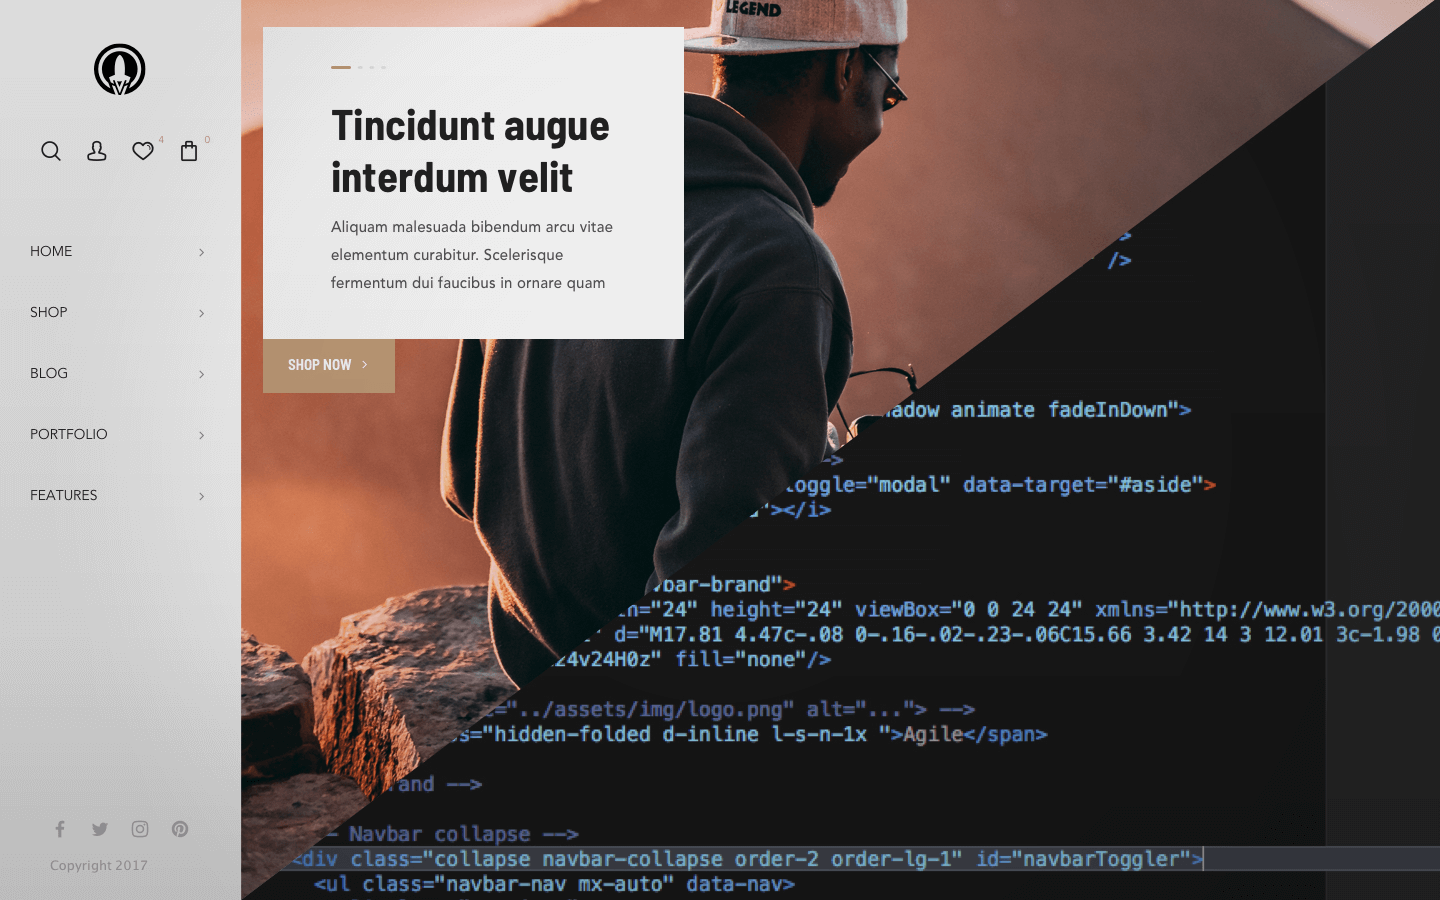 Split picture showing half an image and website design and half the code behind it